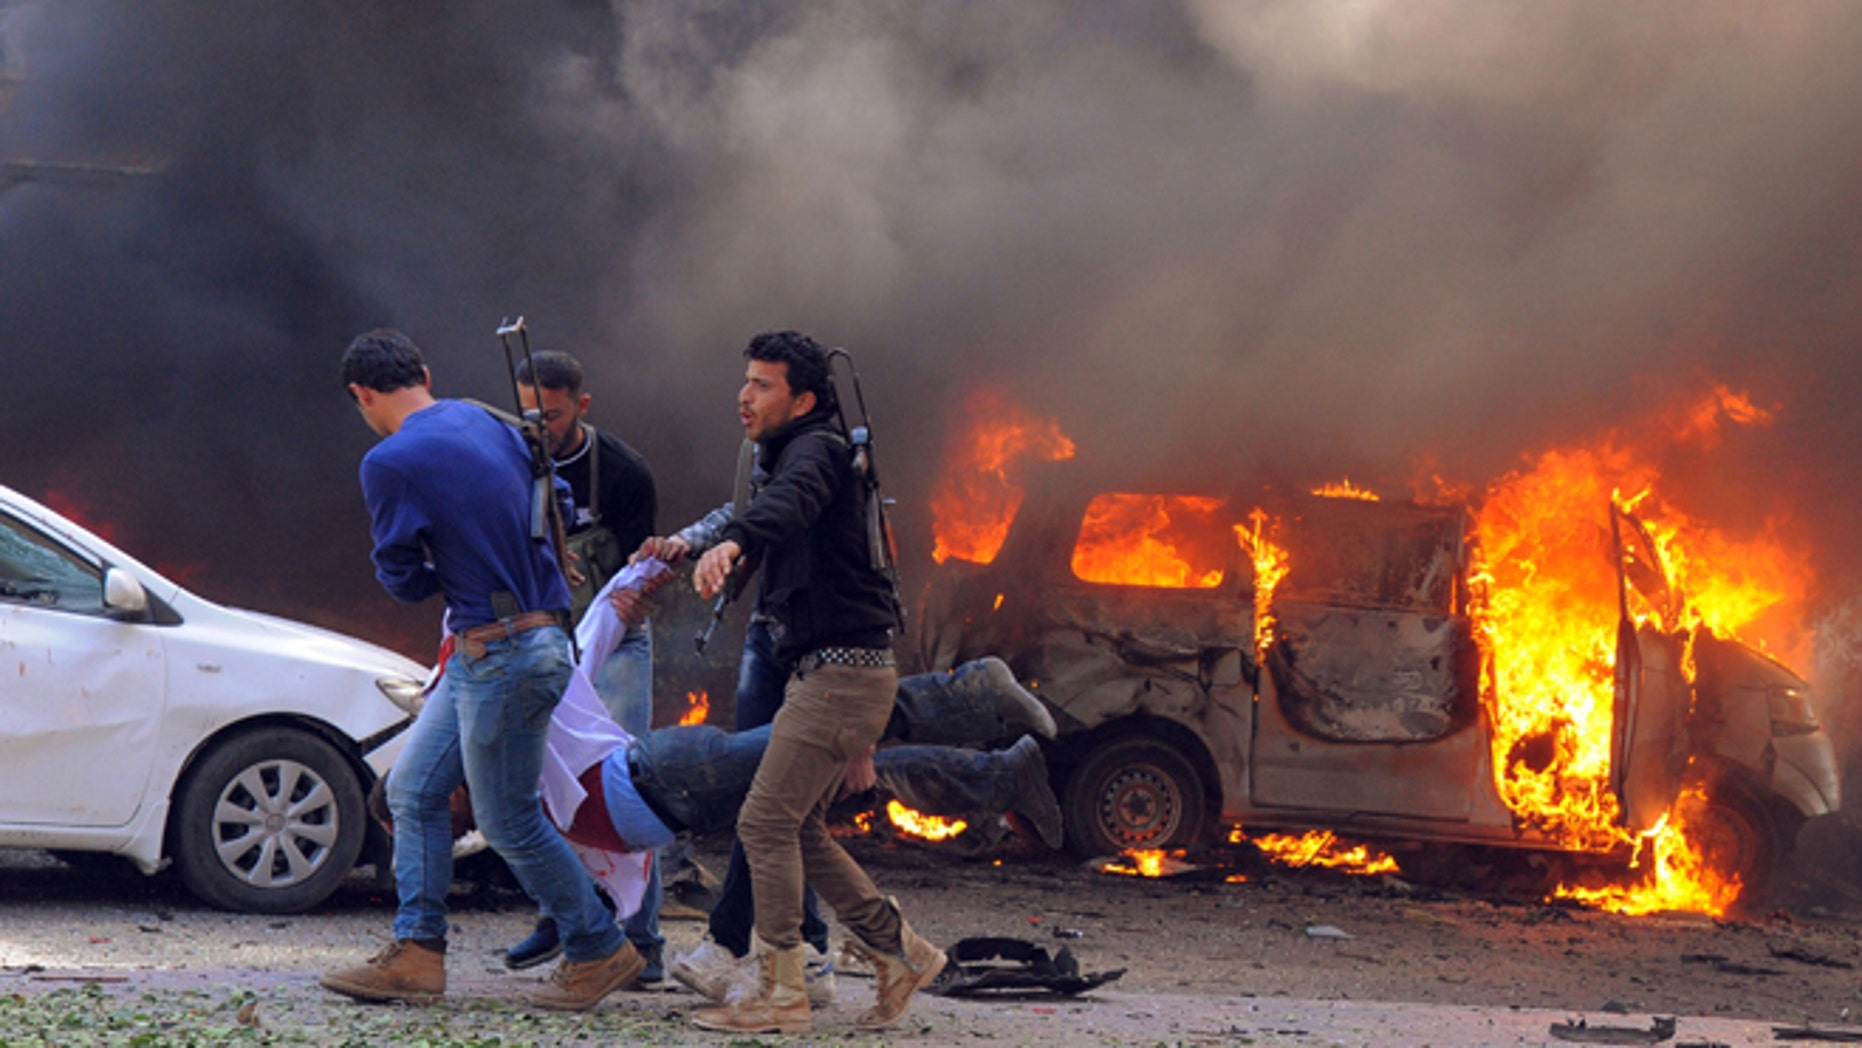 Feb. 21, 2013: In this photo provided by the Syrian official news agency SANA, Syrian security agents carry a body following a huge explosion that shook central Damascus, Syria.